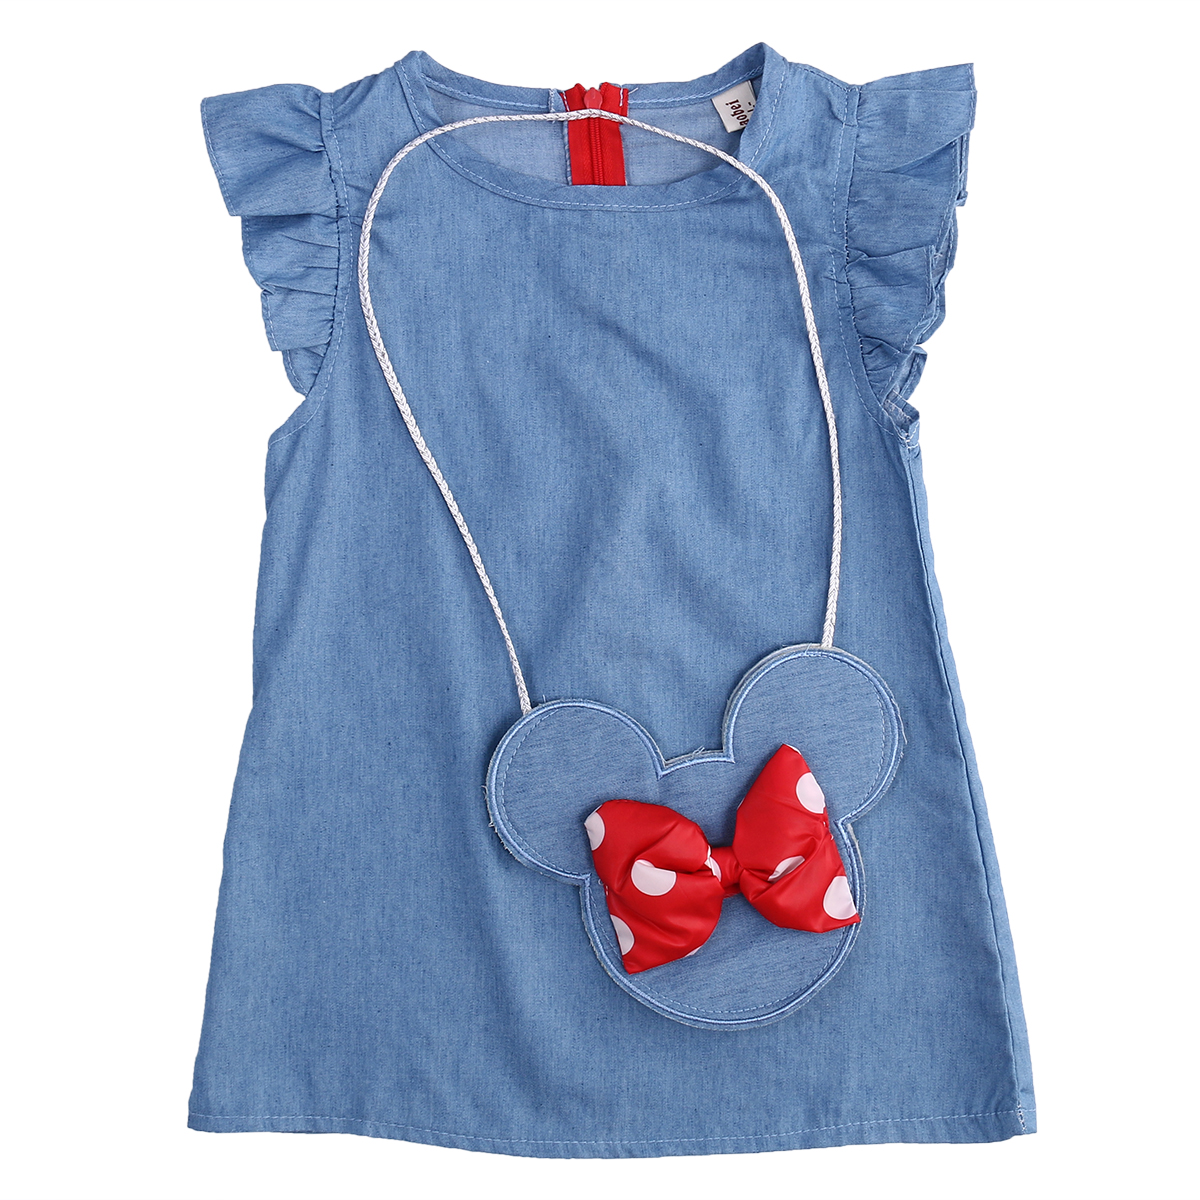 Kids Baby Girl Dress Minnie Mouse Bag +Demin Flying Sleeves Dress ...